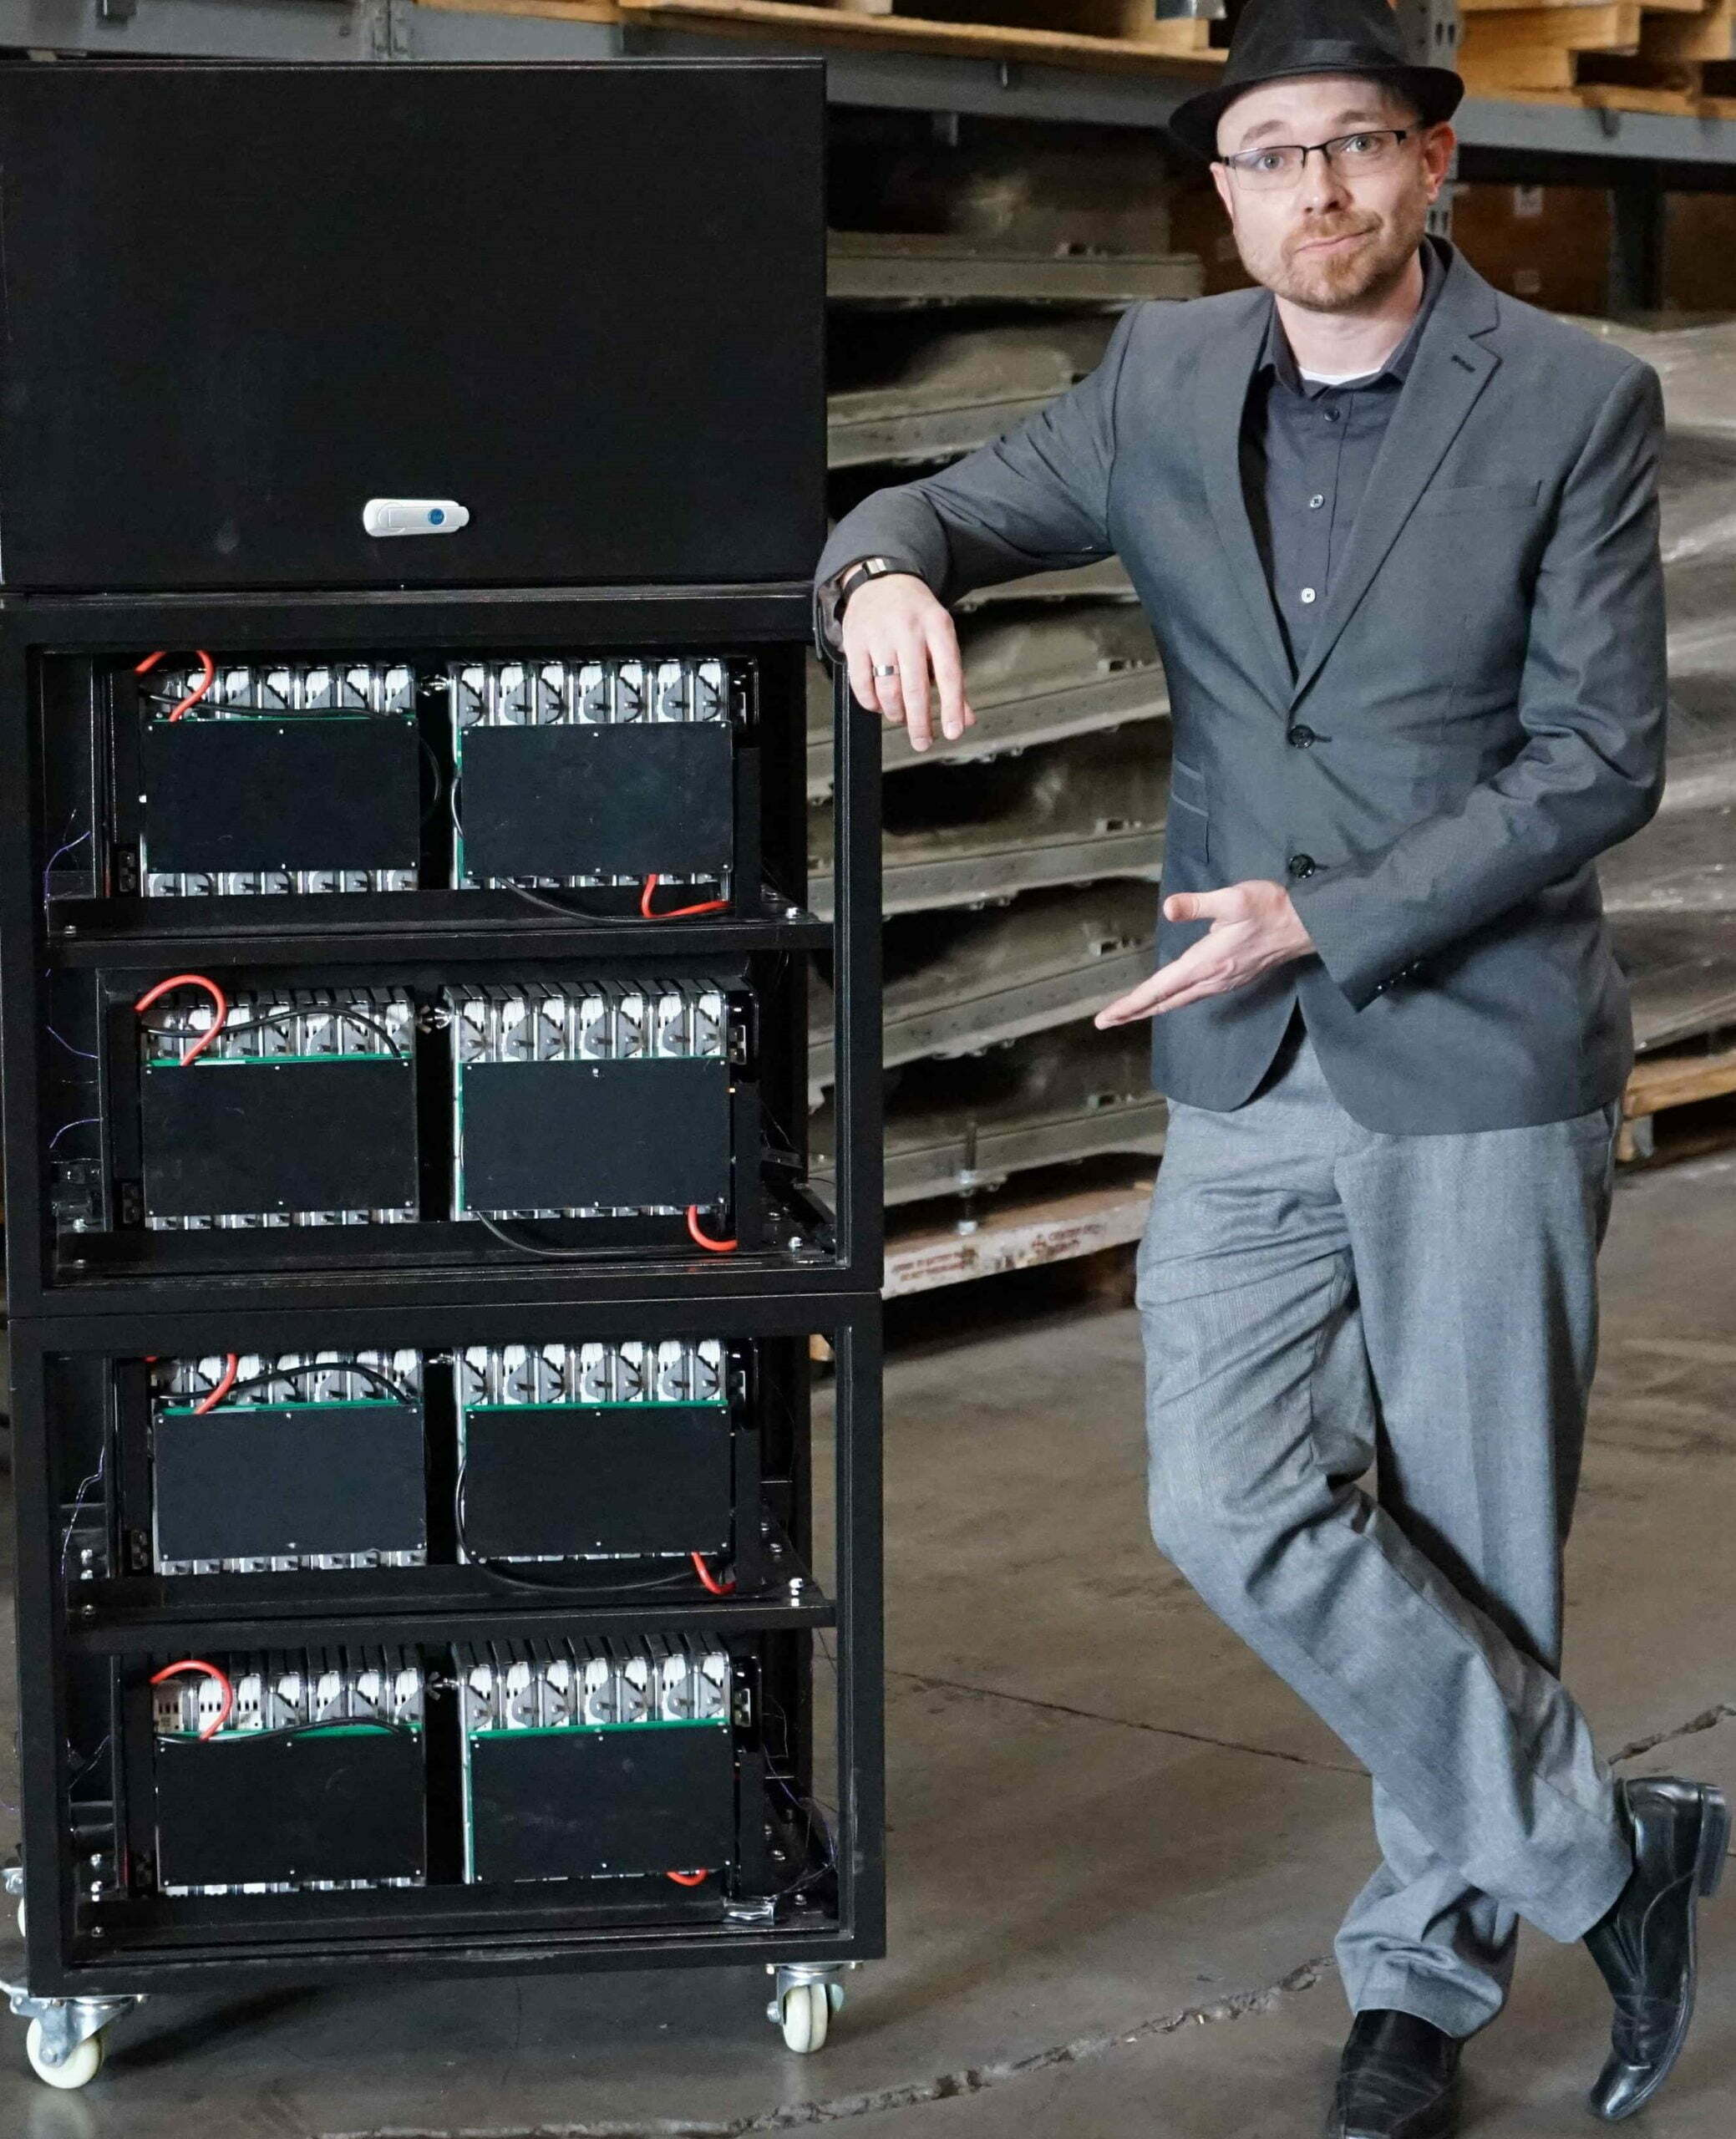 Eric Lundgren's BigBattery is the nation's largest recycler of EV batteries and the largest supplier of surplus and re-certified batteries in the United States. Its hybrid recycling business model is to extract, test and up-cycle high-volumes of discarded lithium-ion EV batteries.